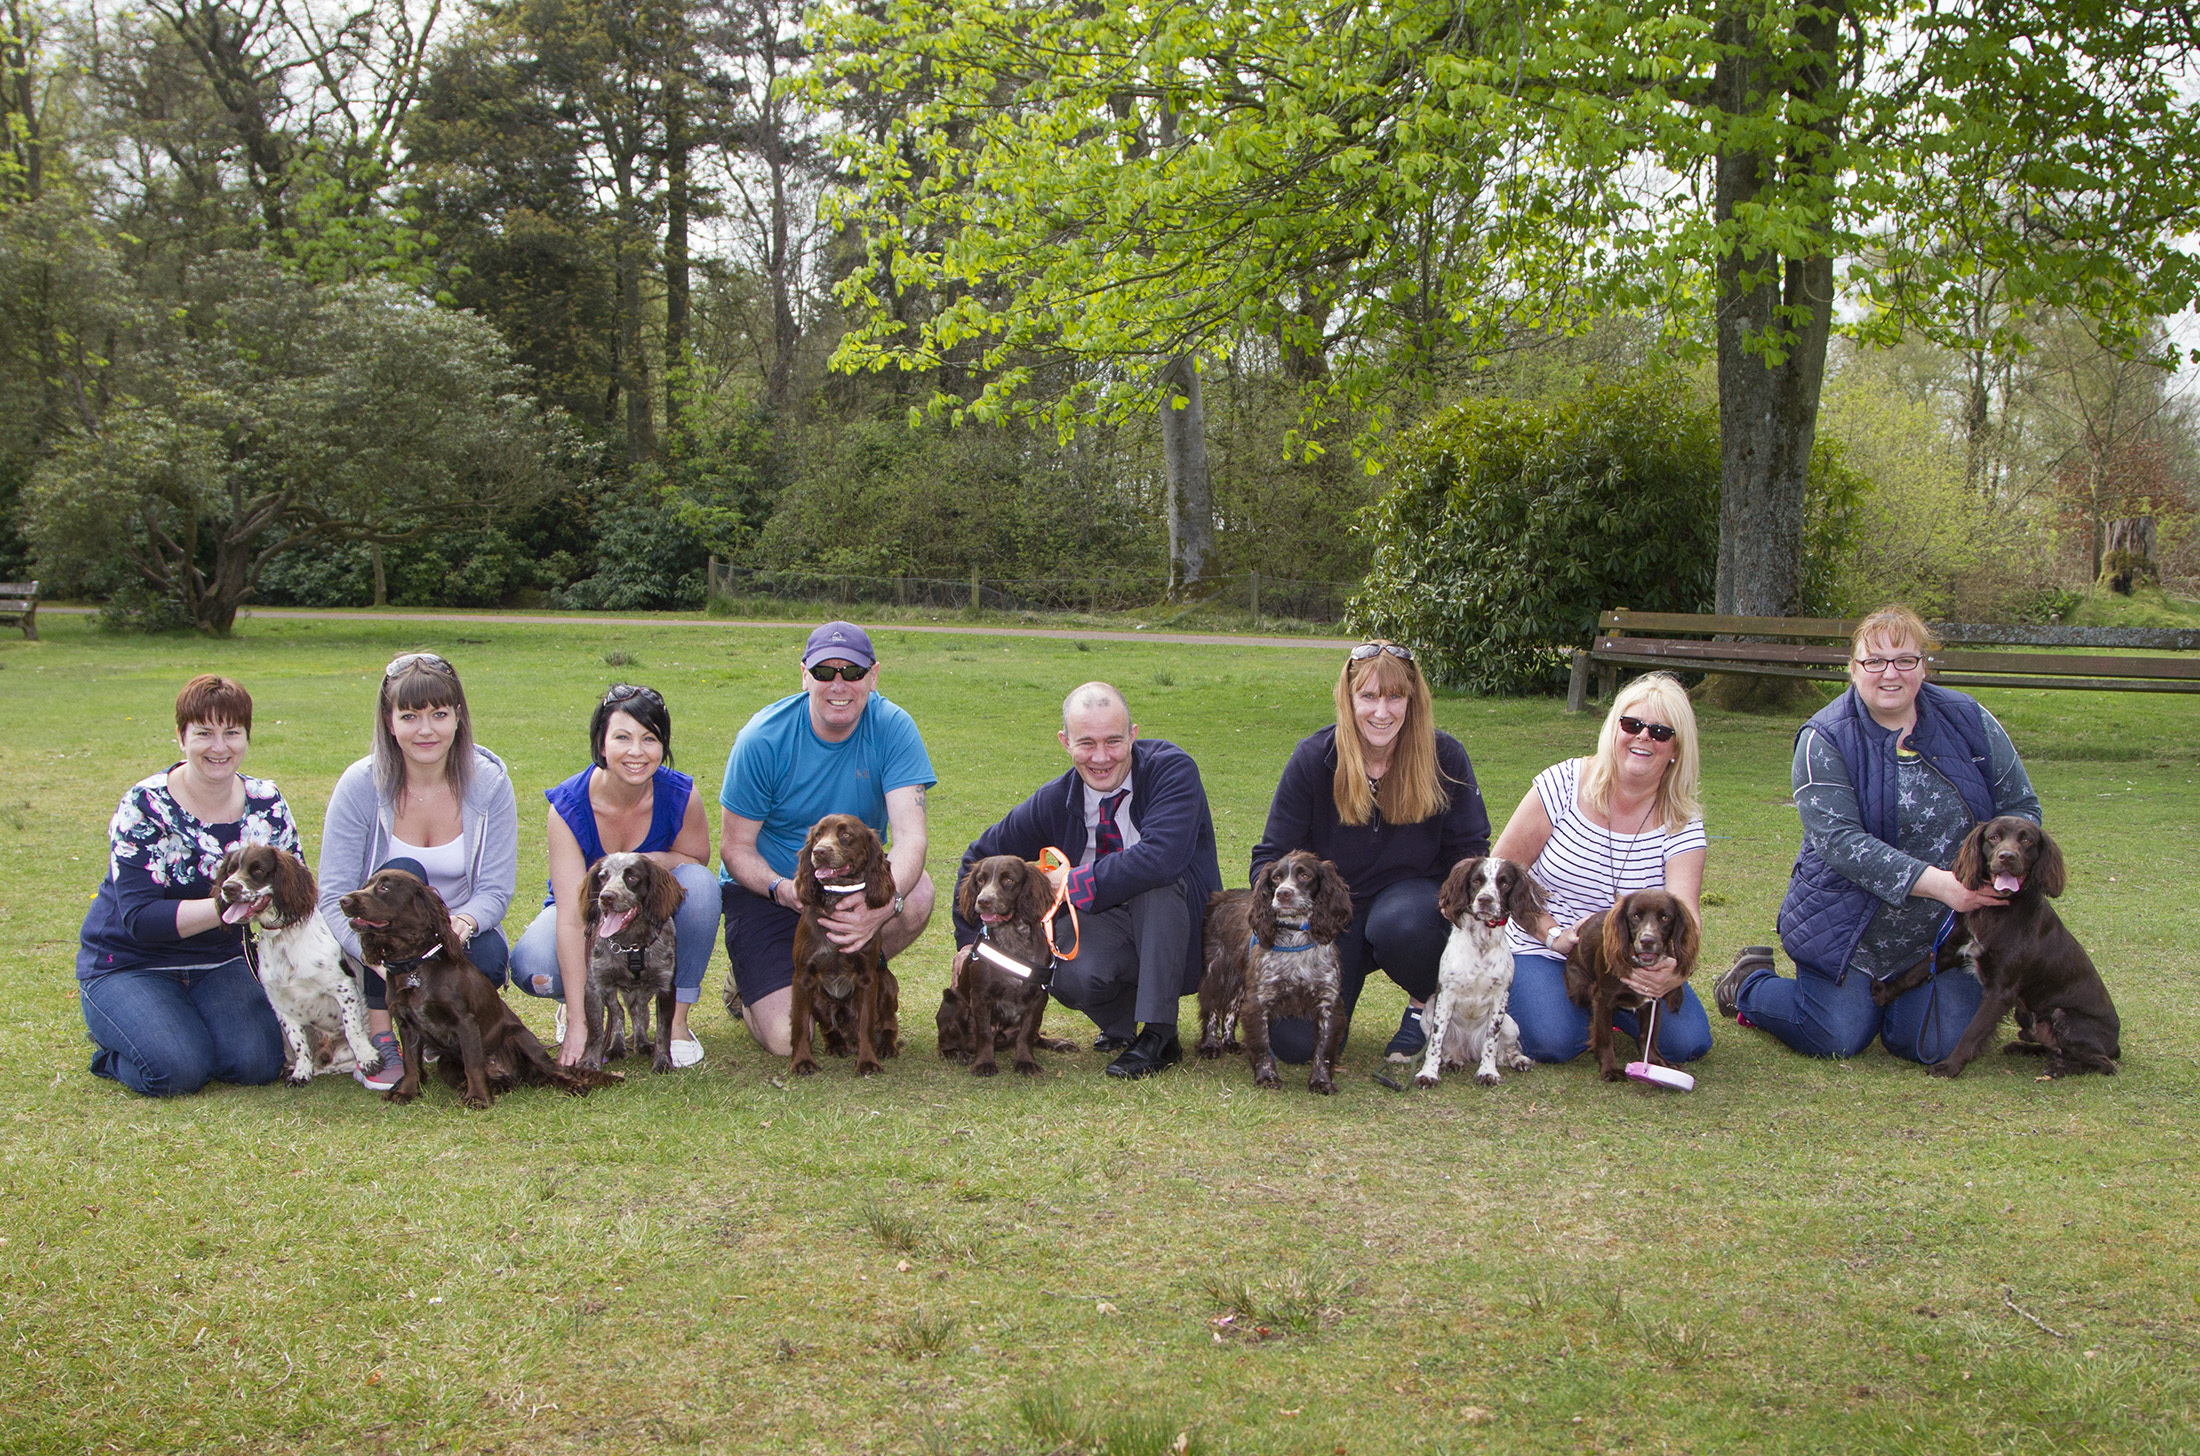 Jacqui Low, third right, with Fern (mother of all the dogs) and Thomas Masters, fourth right, with his film star Bravehound dog Antis.